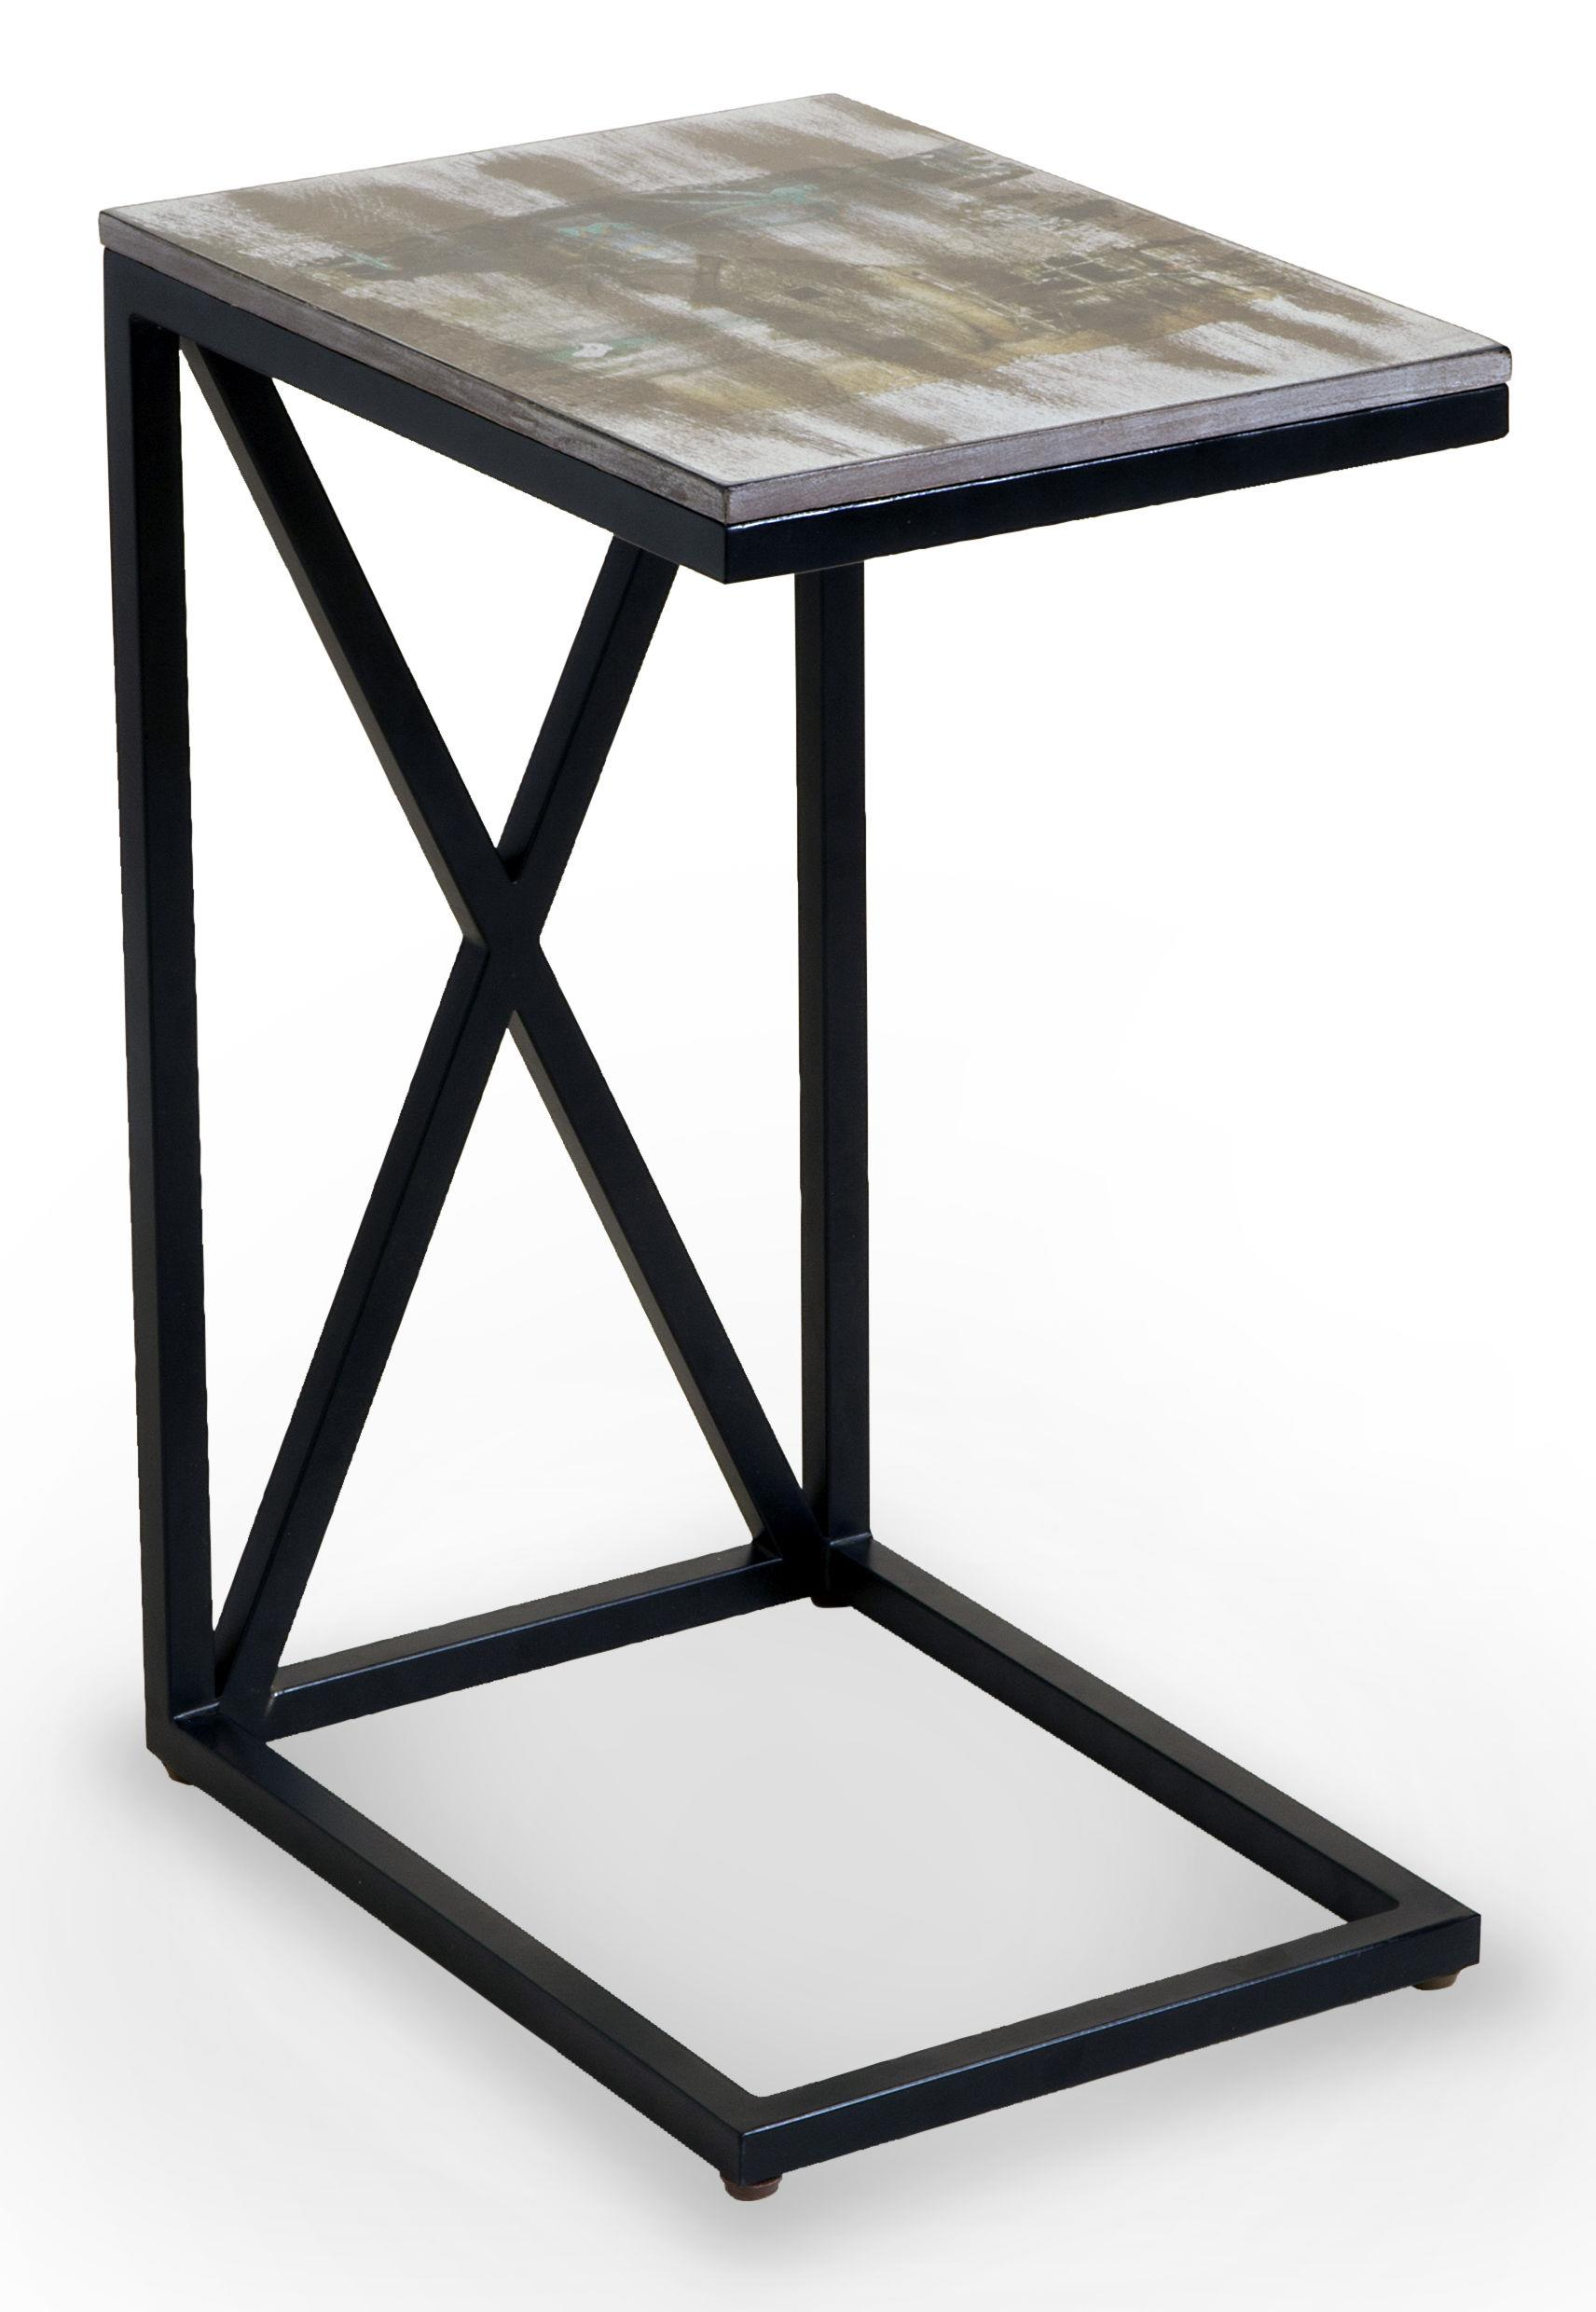 High Accent Tables Stein World Accent Tables High Tide Accent Side Table